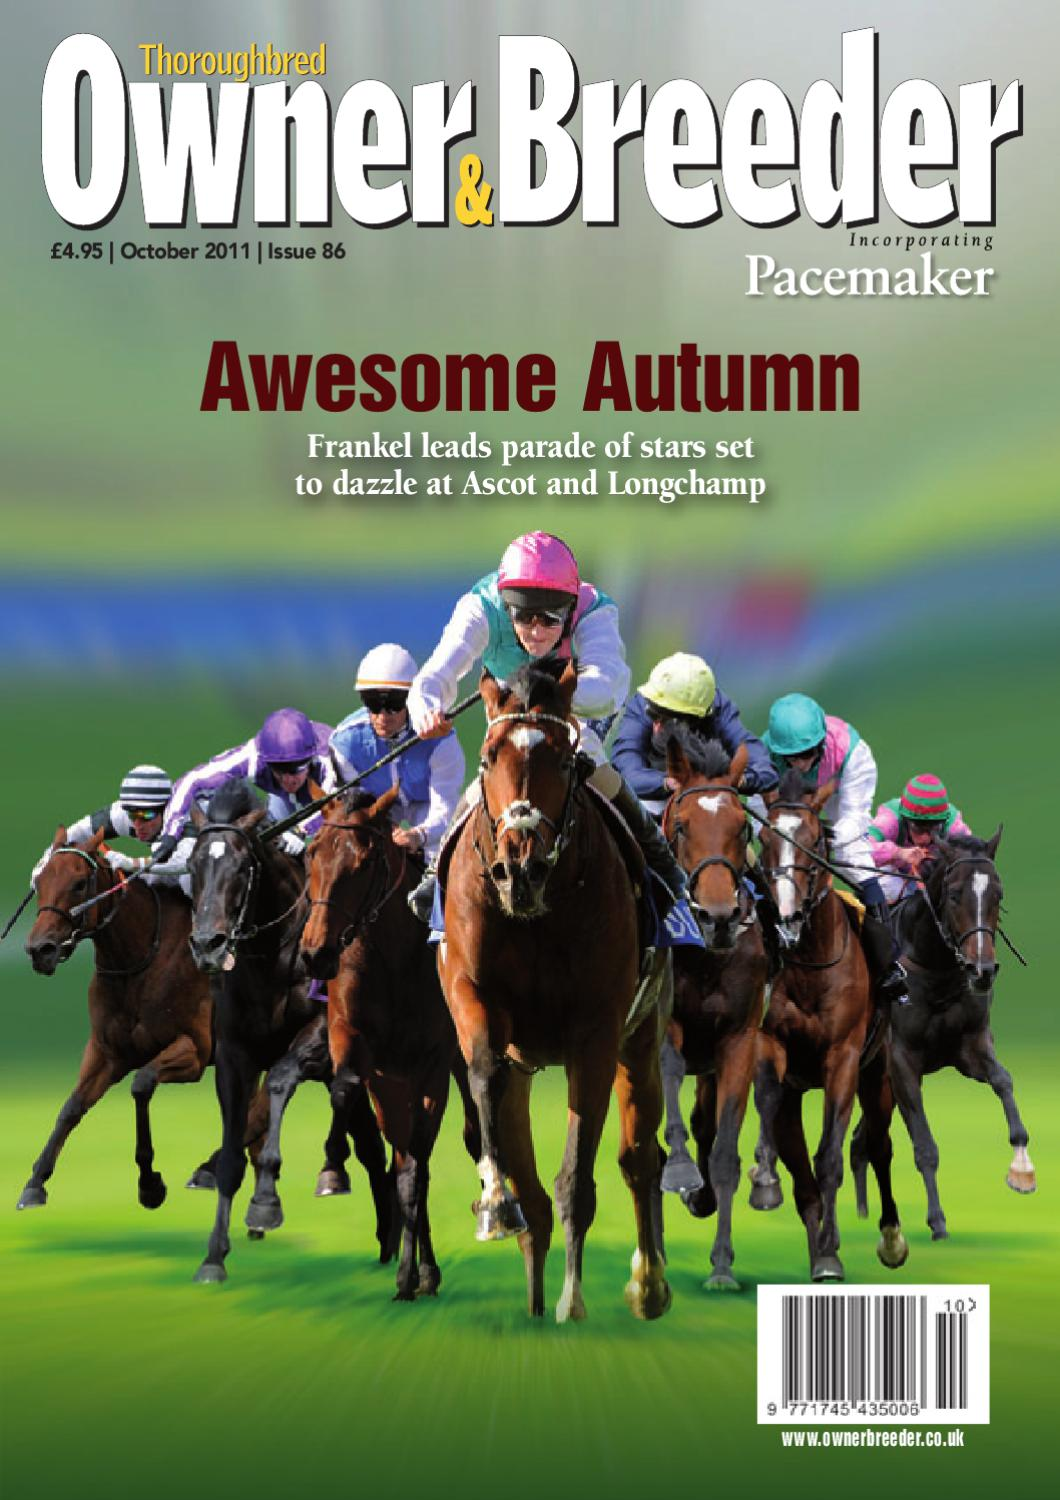 Thoroughbred Owner & Breeder by Racehorse Owners Association - issuu